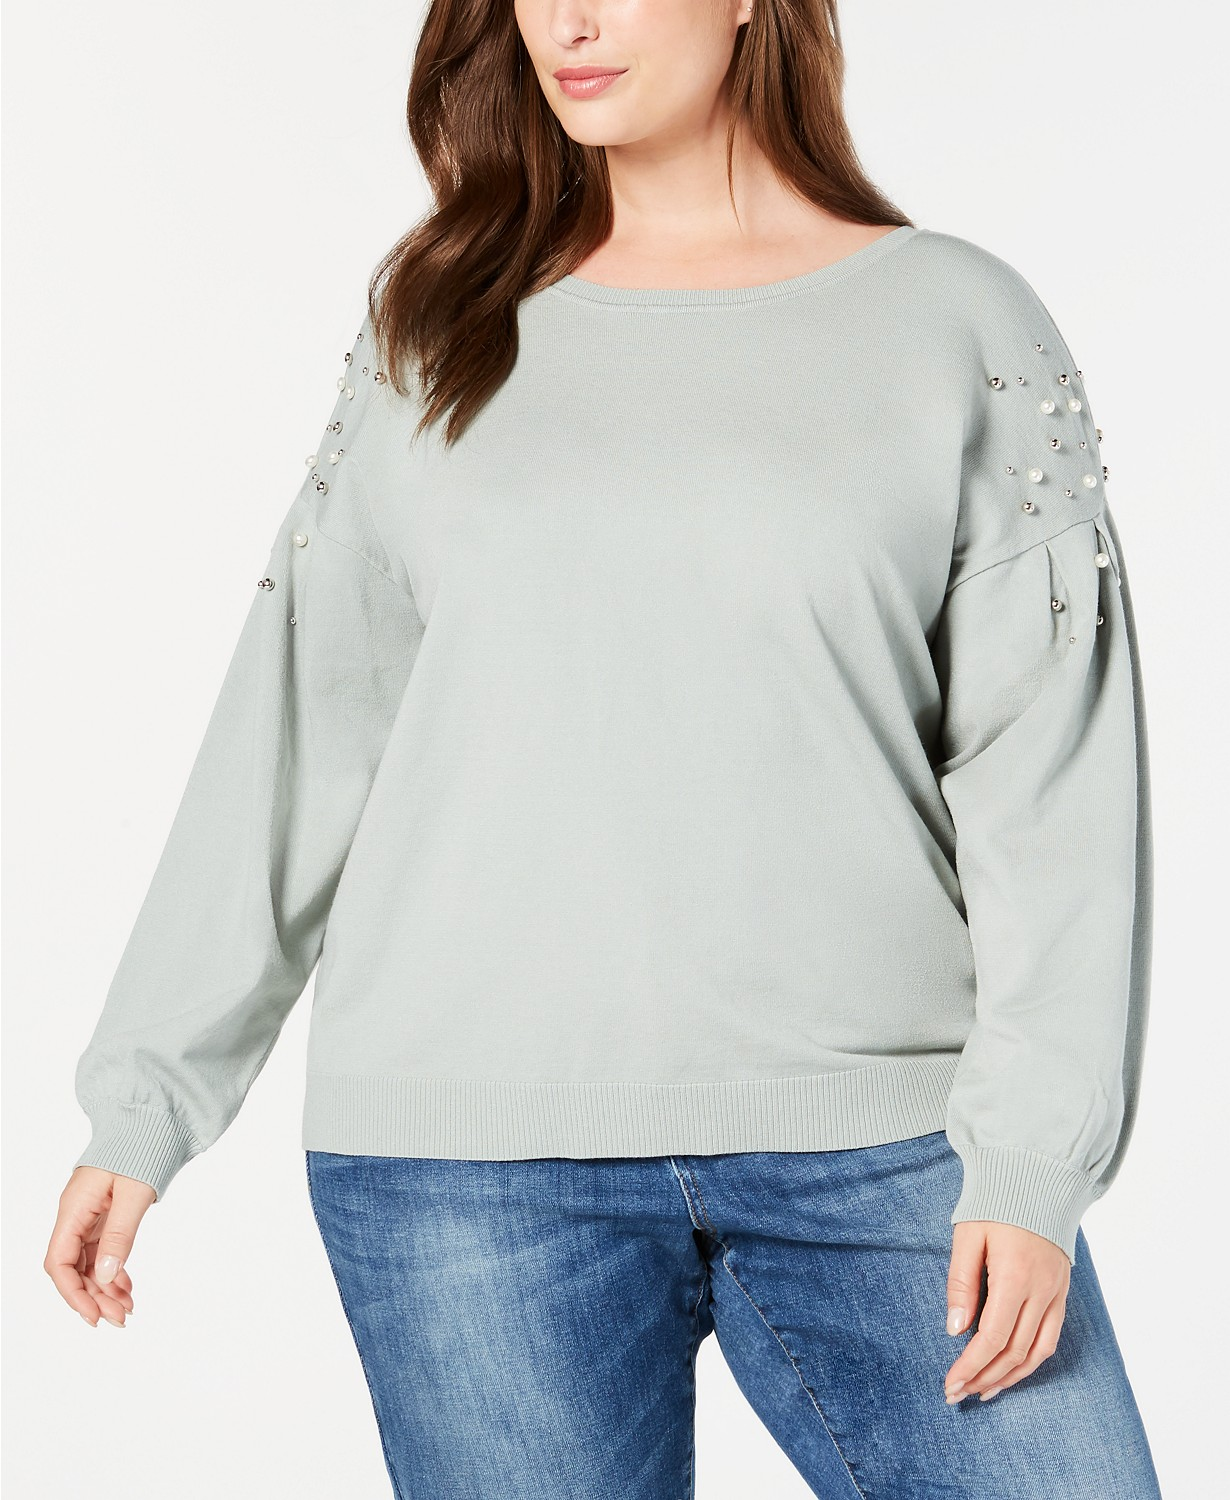 Plus size Sweaters: INC Plus Size Embellished Sweater up through a size 3X at Macys